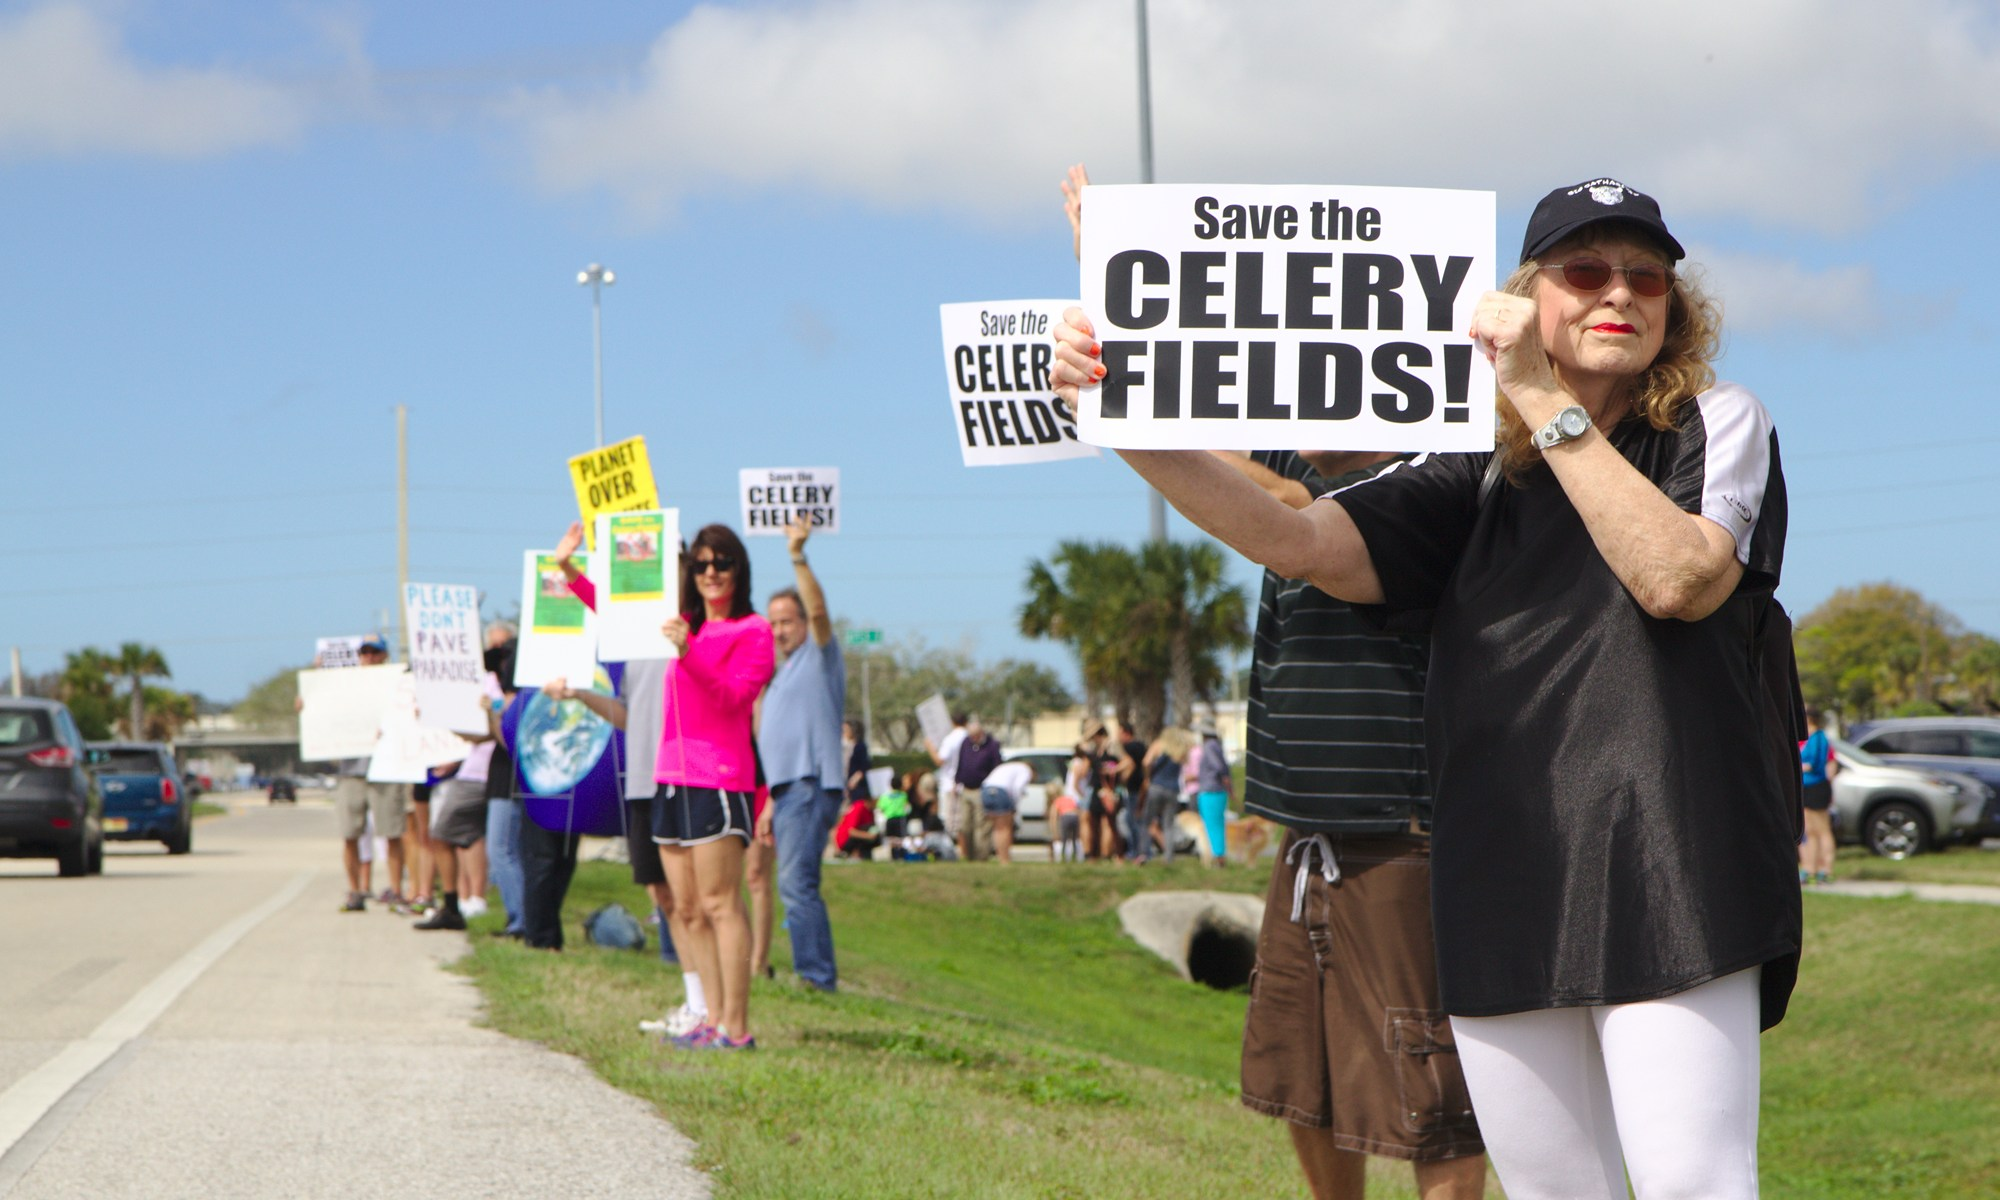 Save the Celery Fields: Protesters on Palmer 2/25/2017